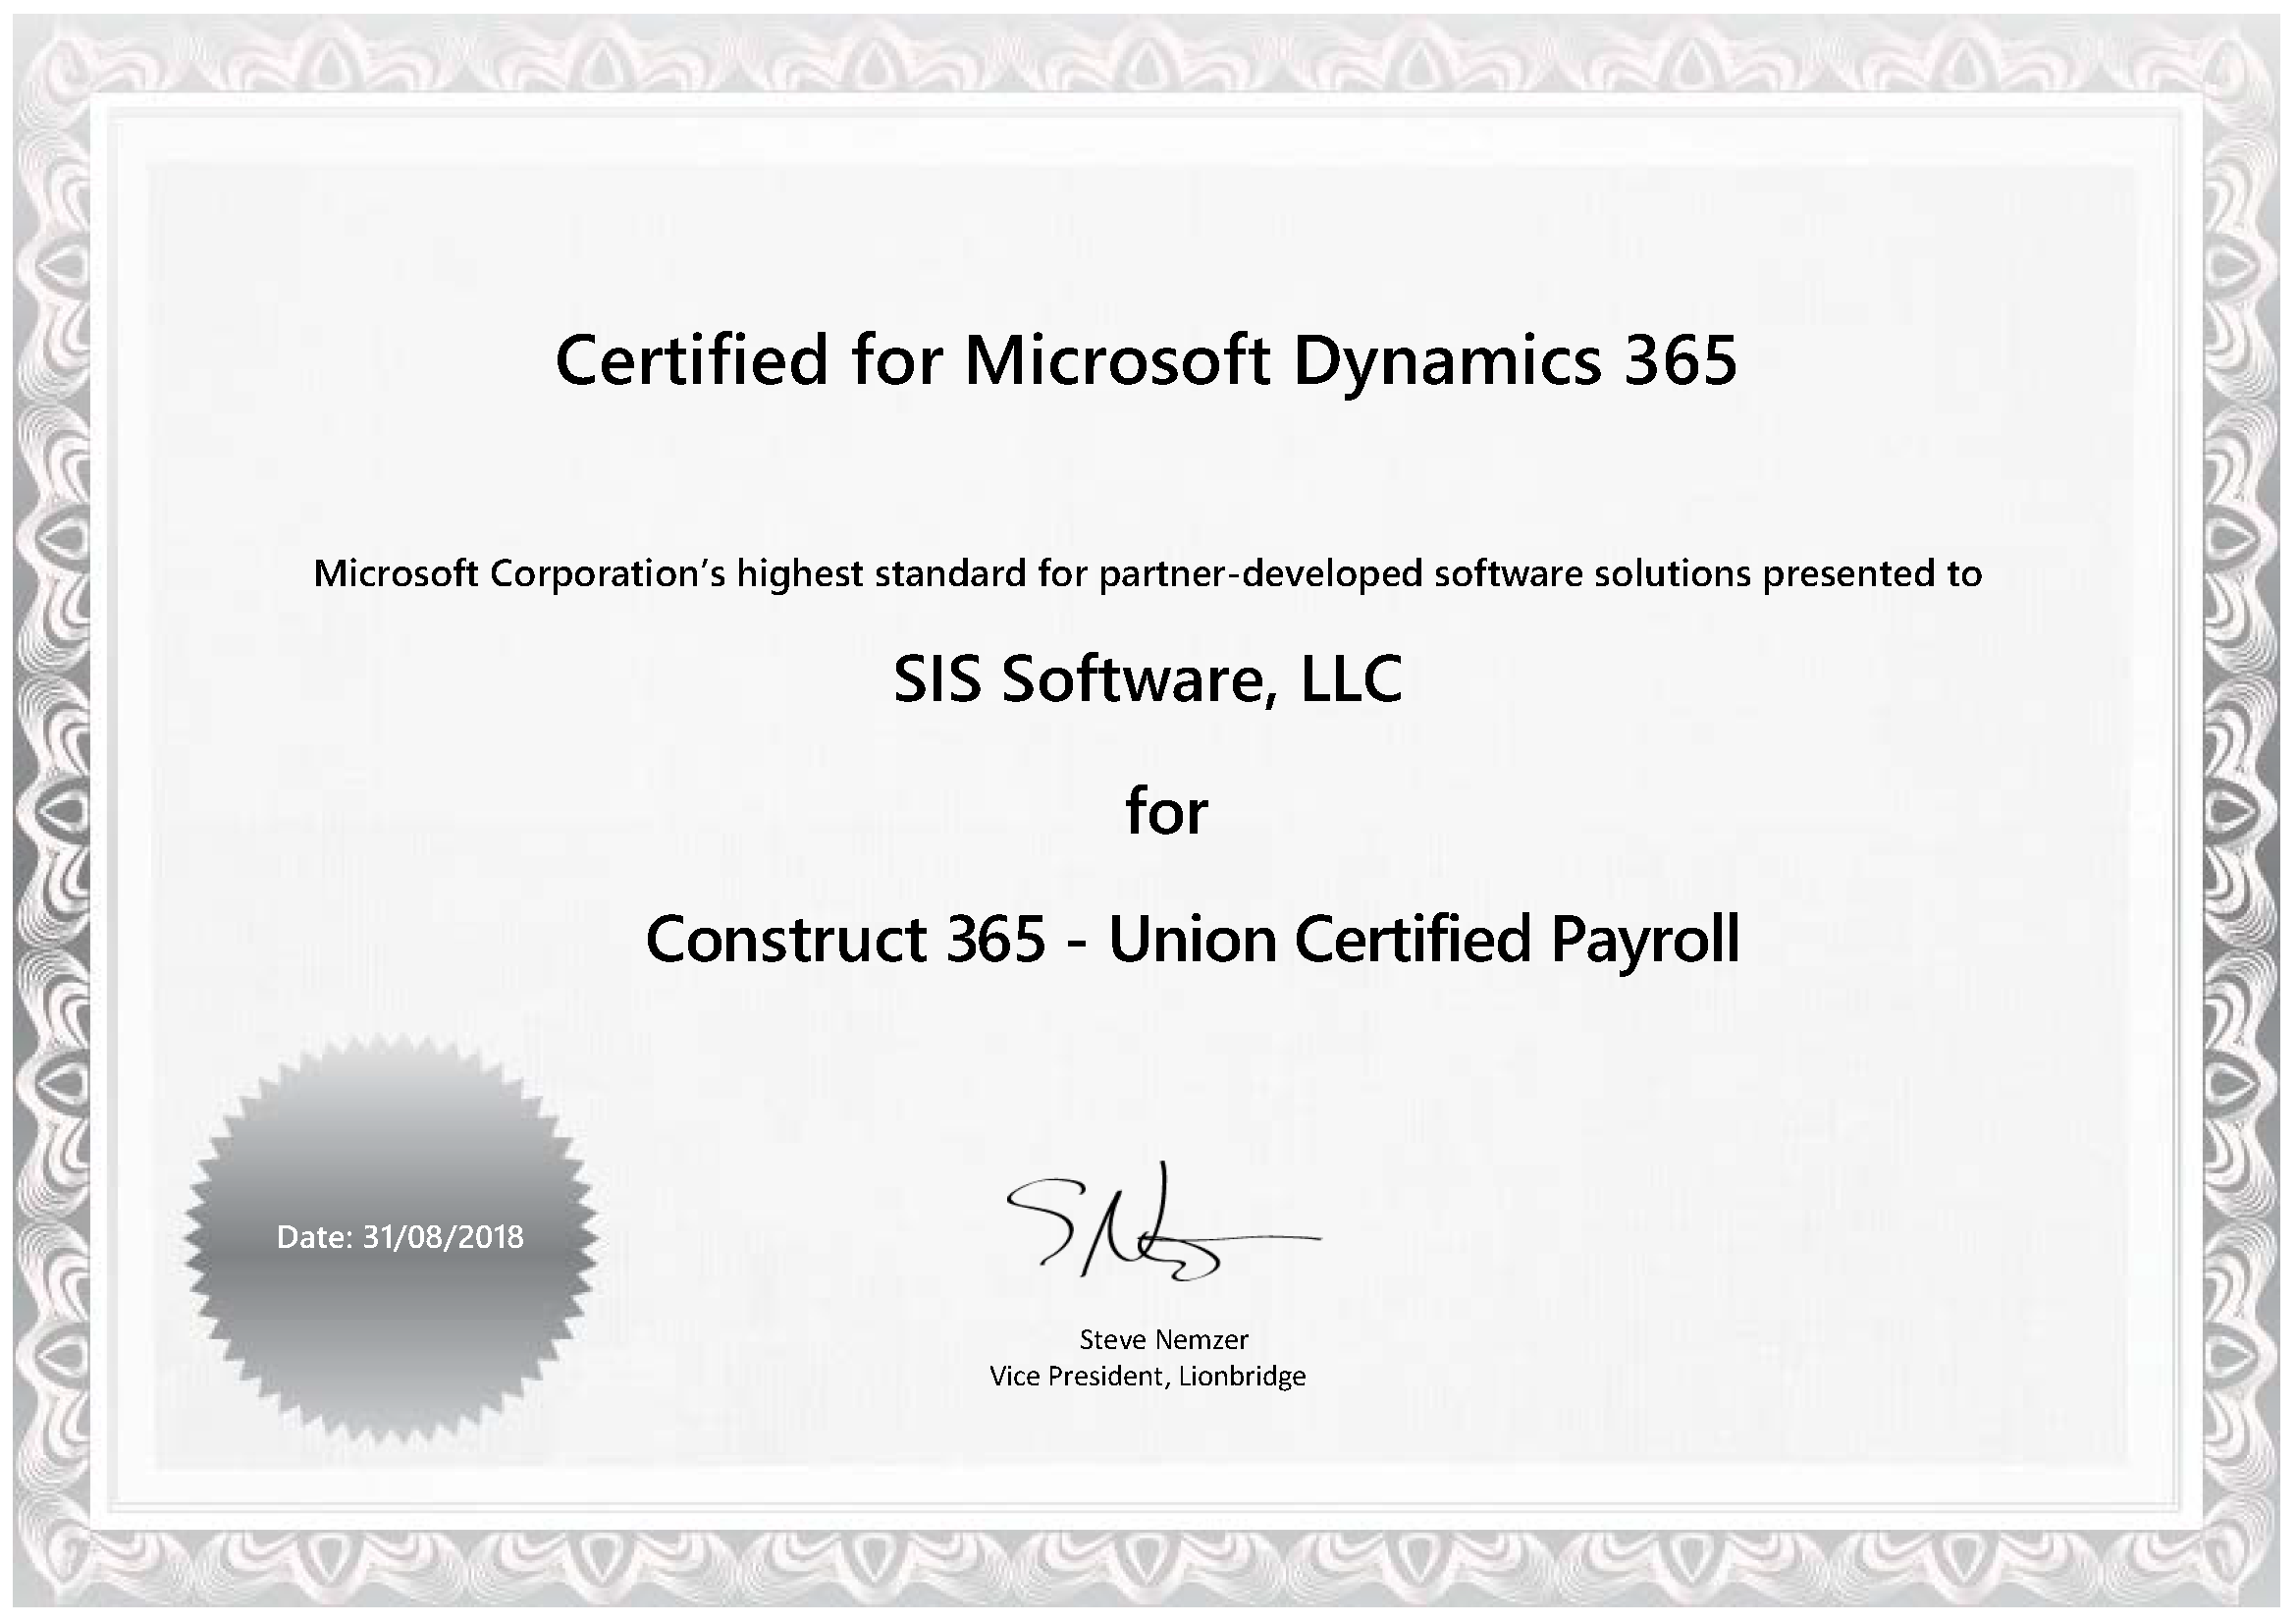 Sis Earns Certified For Microsoft Dynamics Accreditation For